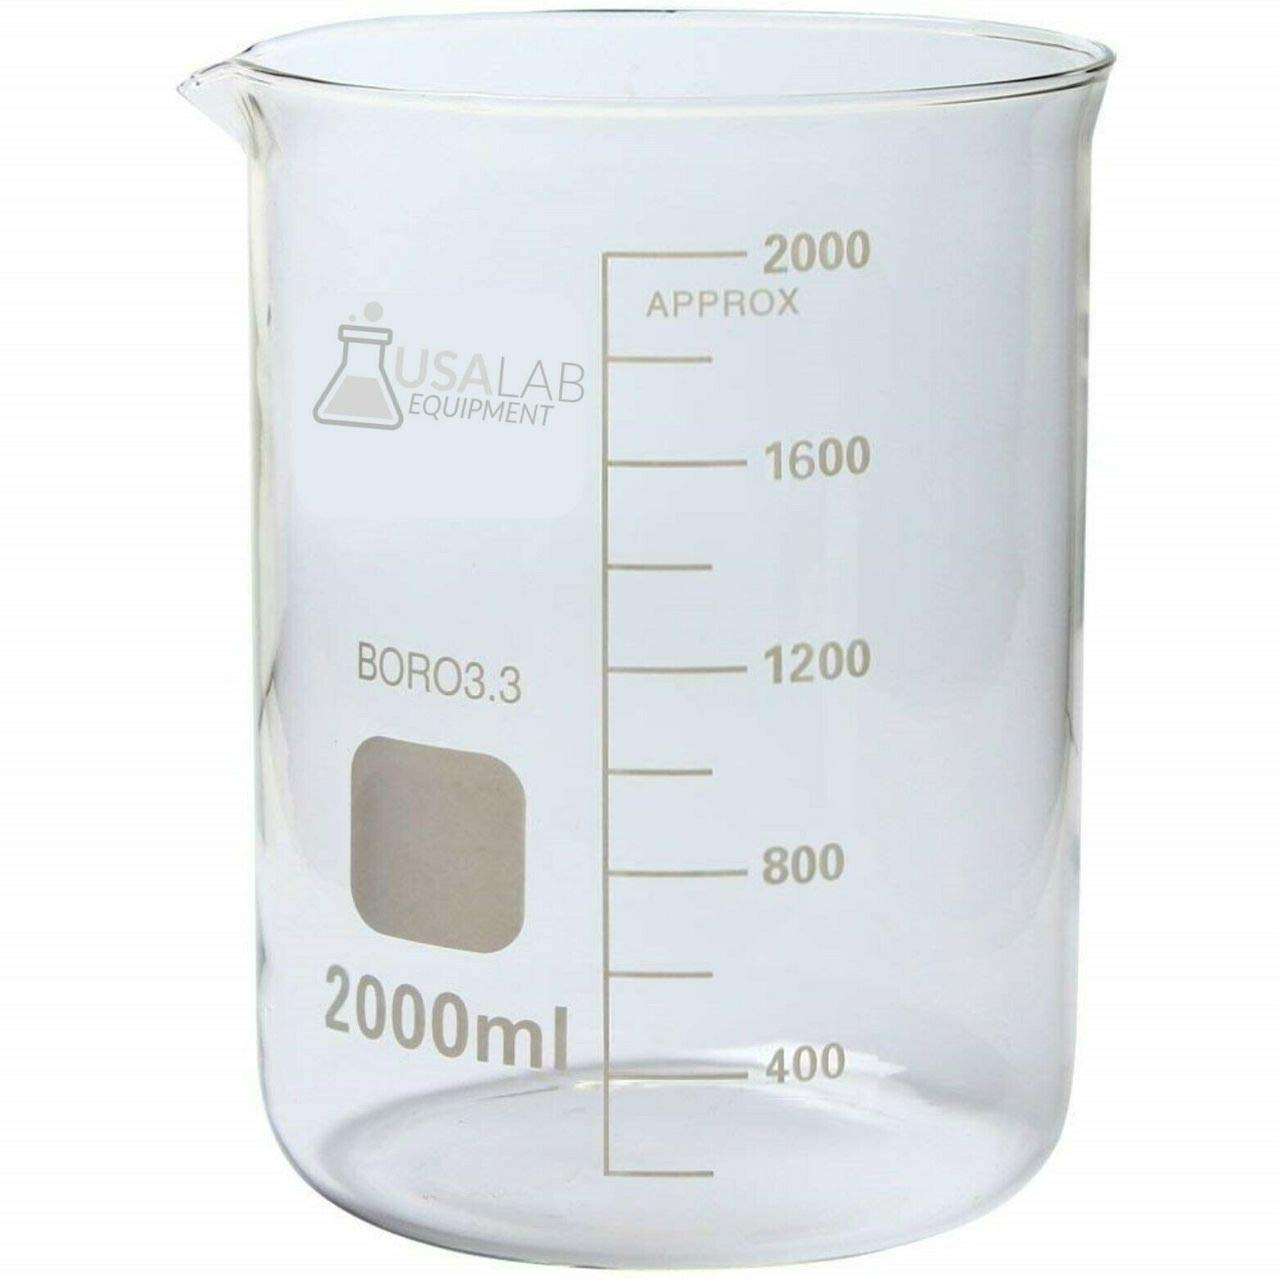 Popular brand in the world USA Lab Save money 2000ML Low Form Beaker and with Spout Borosilicate 3 Pri